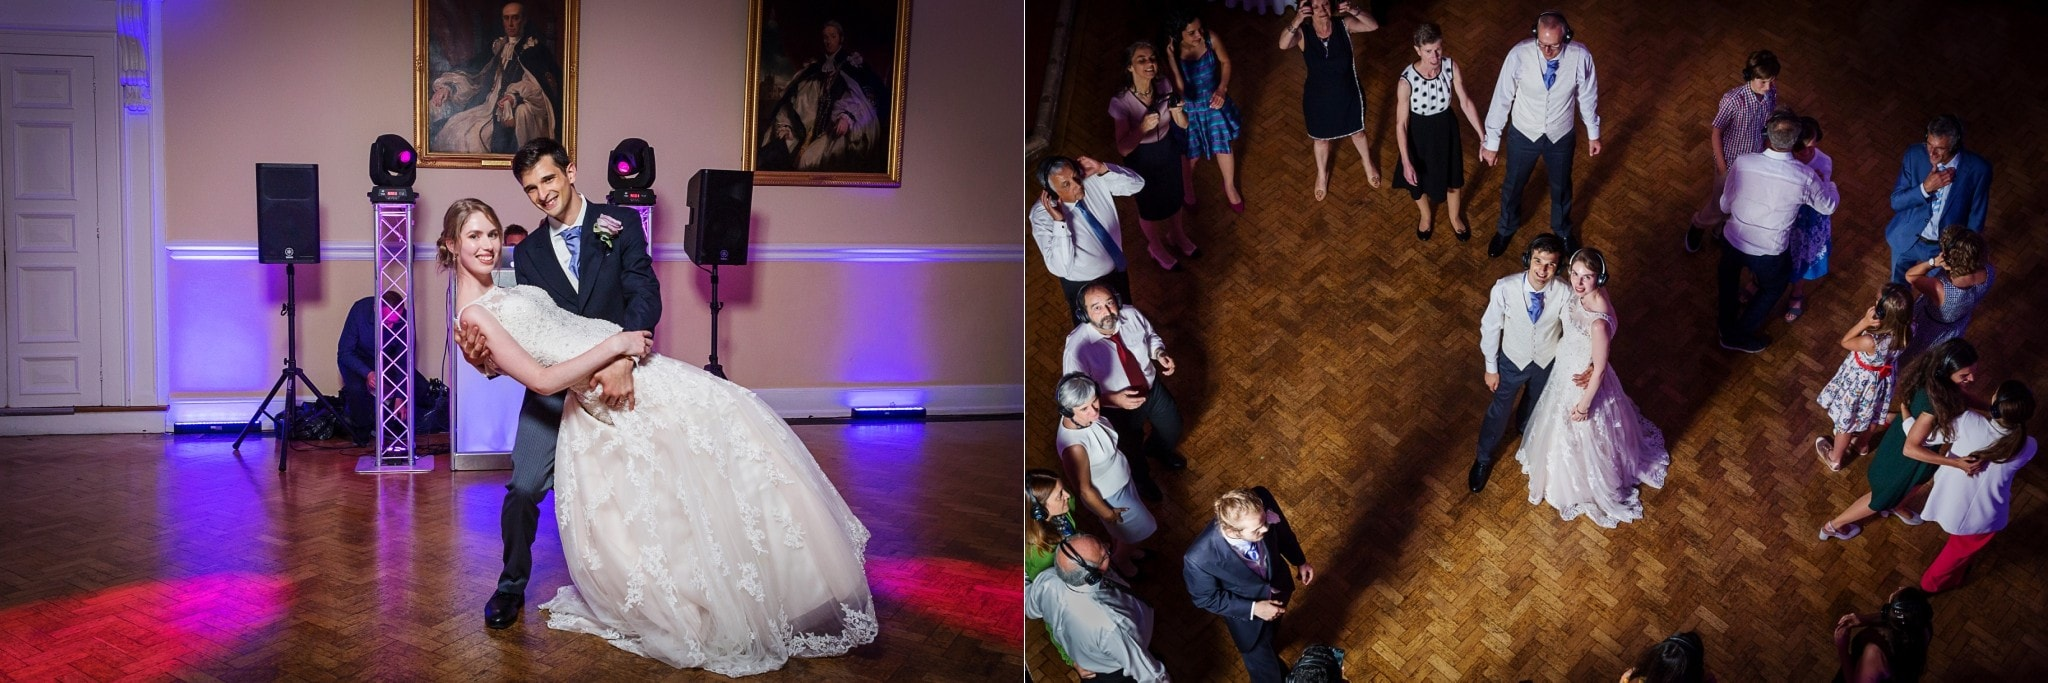 Farnham Castle Wedding Photography - Steph and Gee 33